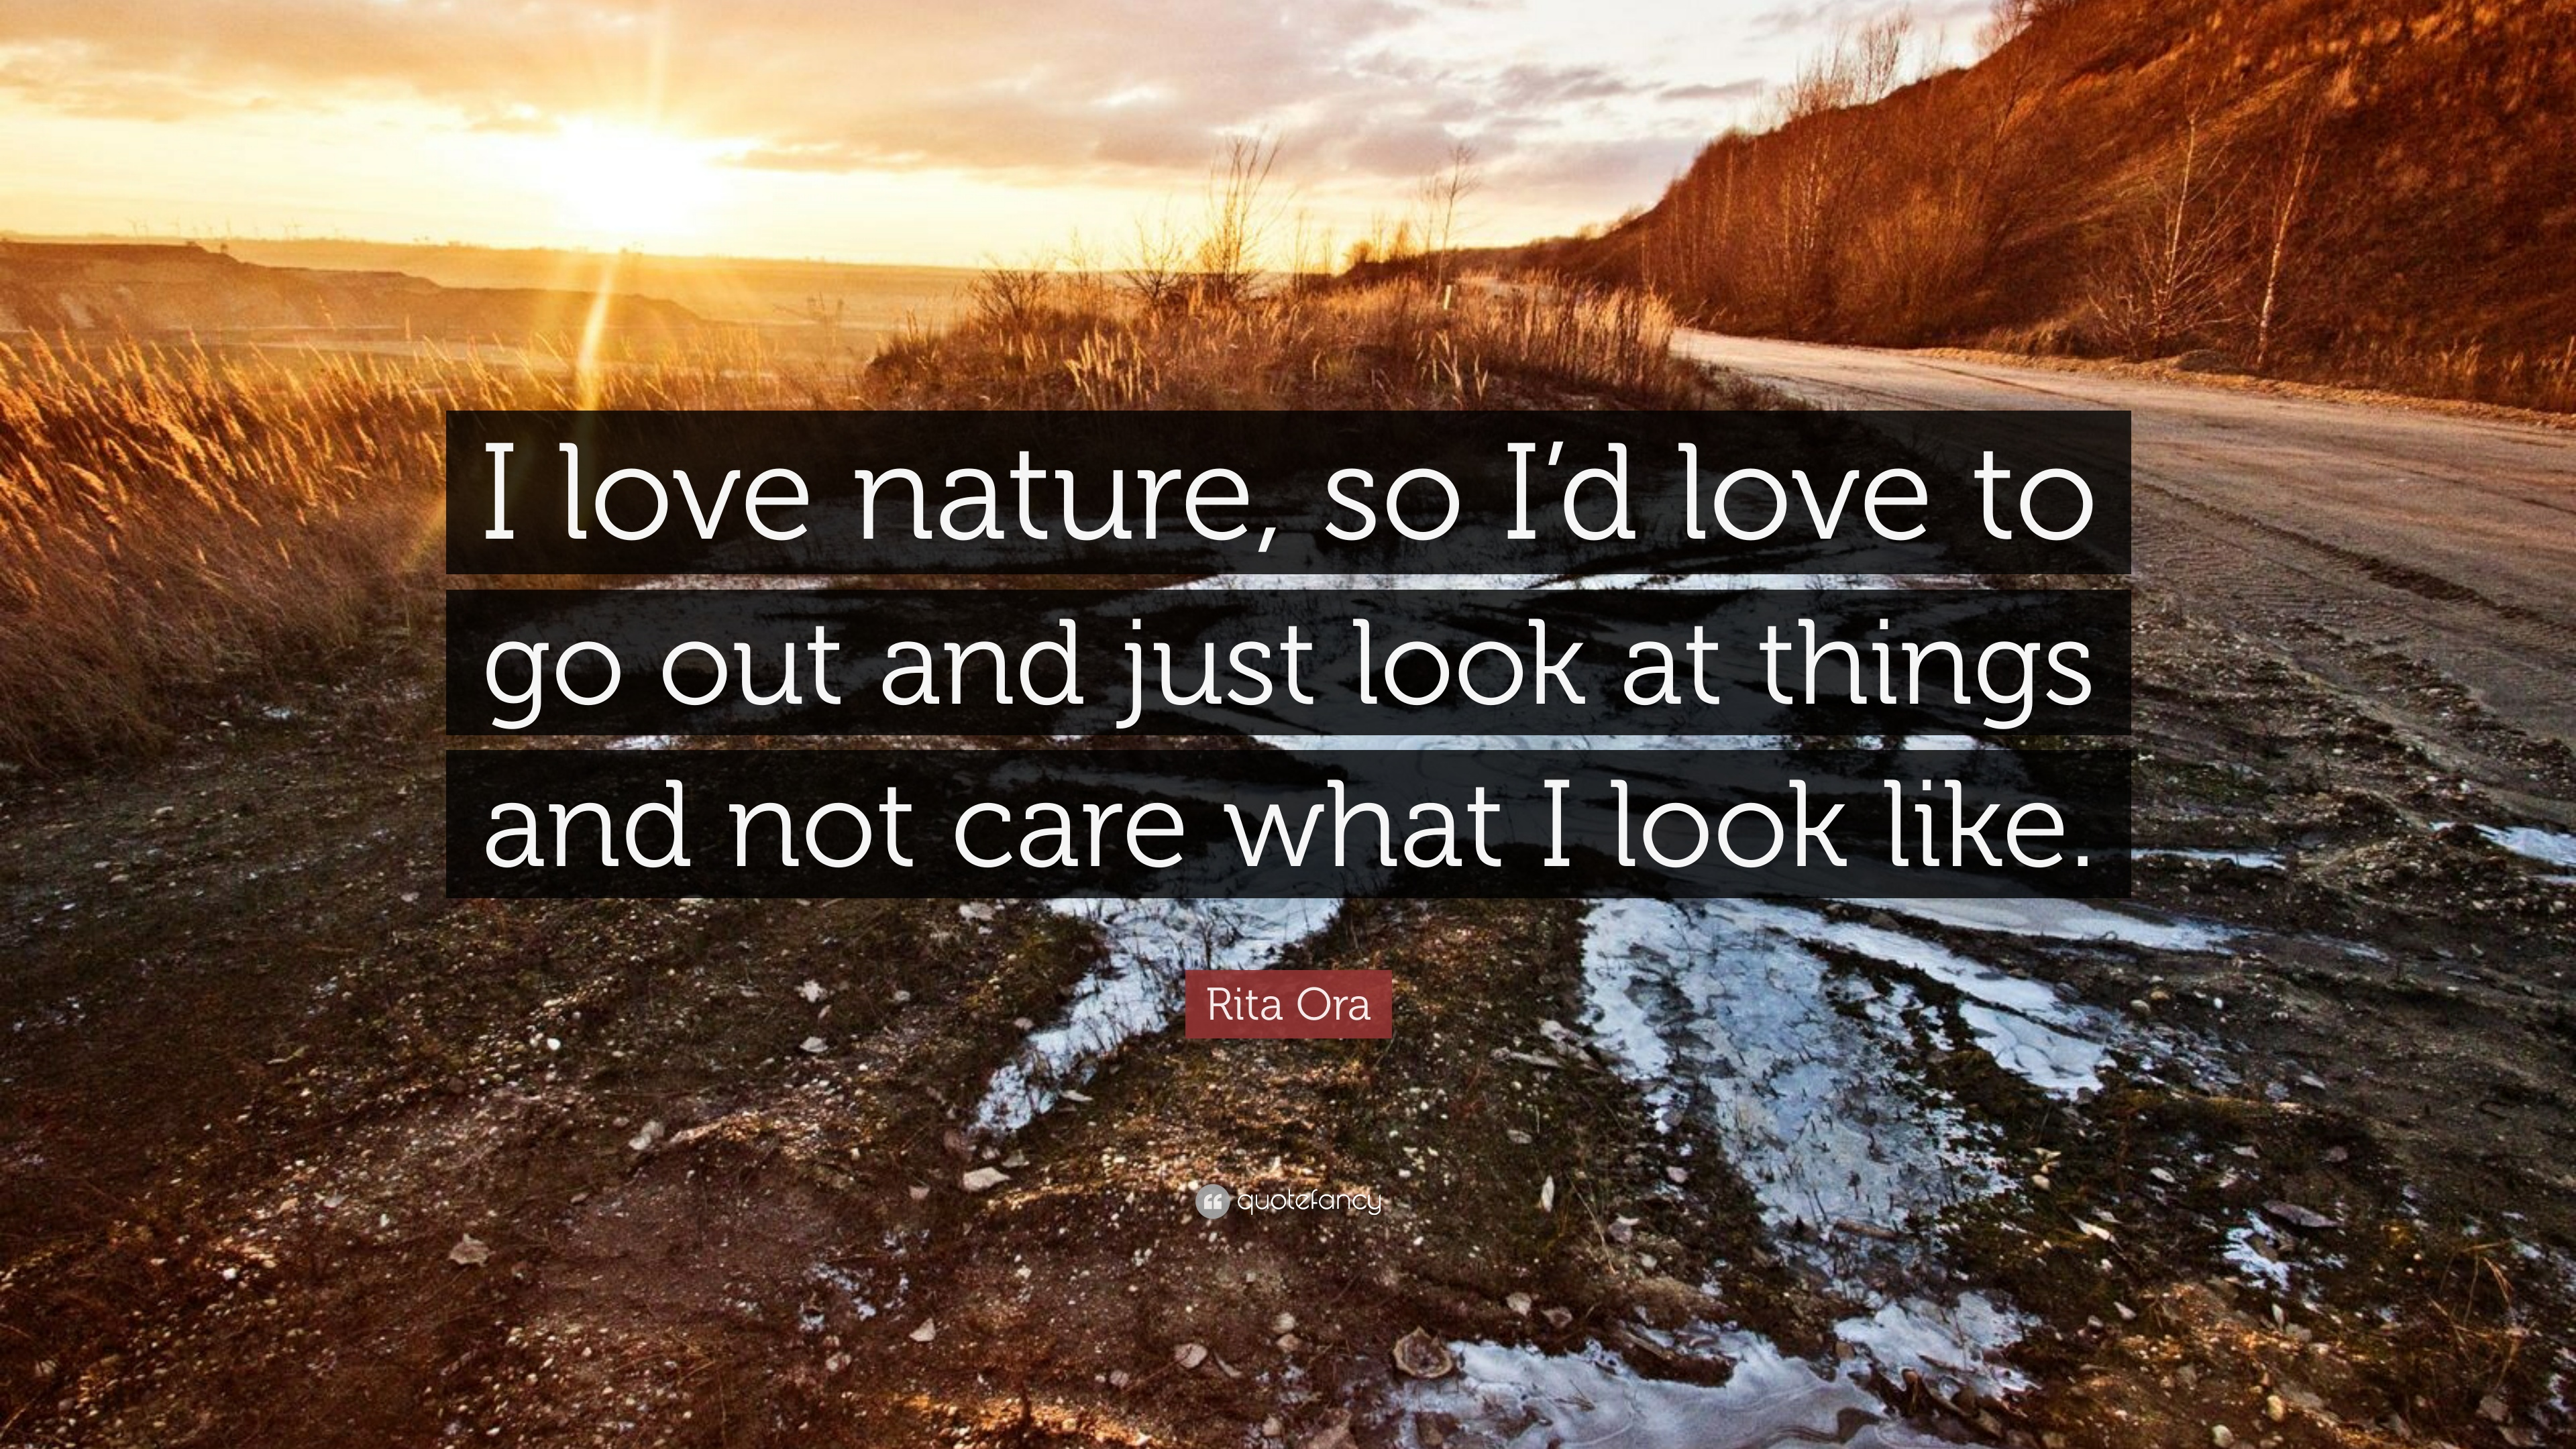 Rita Ora Quote I Love Nature So I D Love To Go Out And Just Look At Things And Not Care What I Look Like 7 Wallpapers Quotefancy